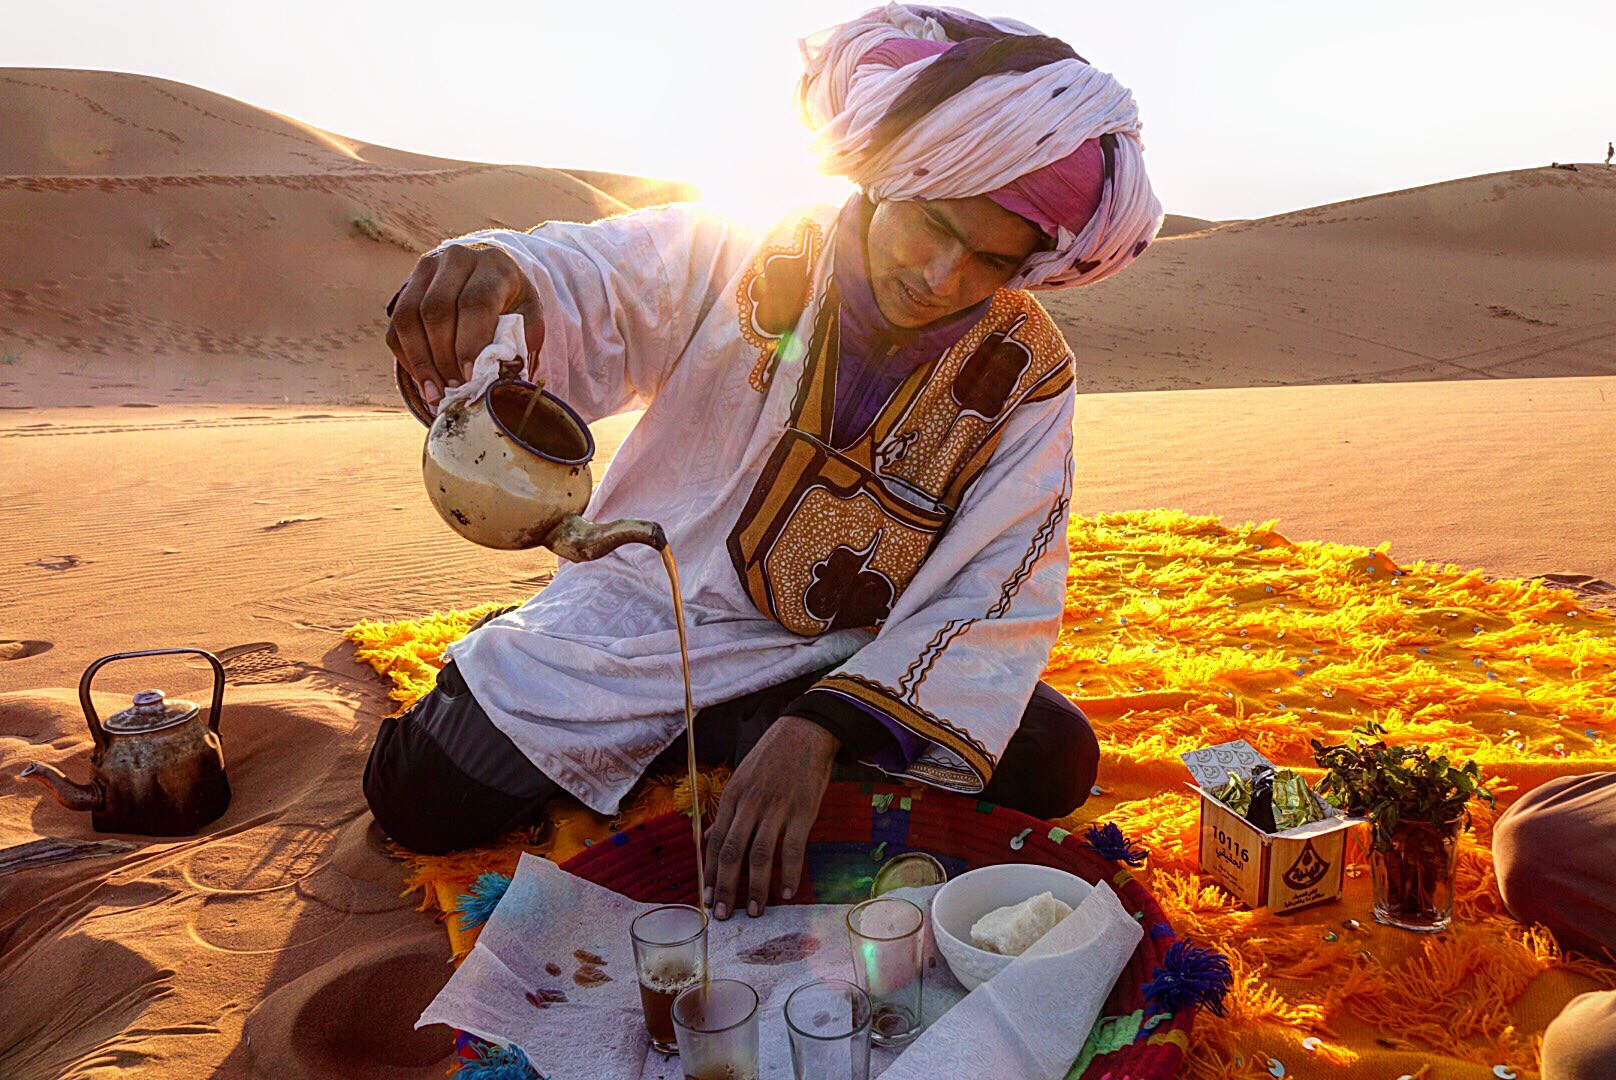 HASSAN SET UP A SPECIAL TEA SPOT TO ENJOY THE SUNSET IN THE SAHARA DESERT.